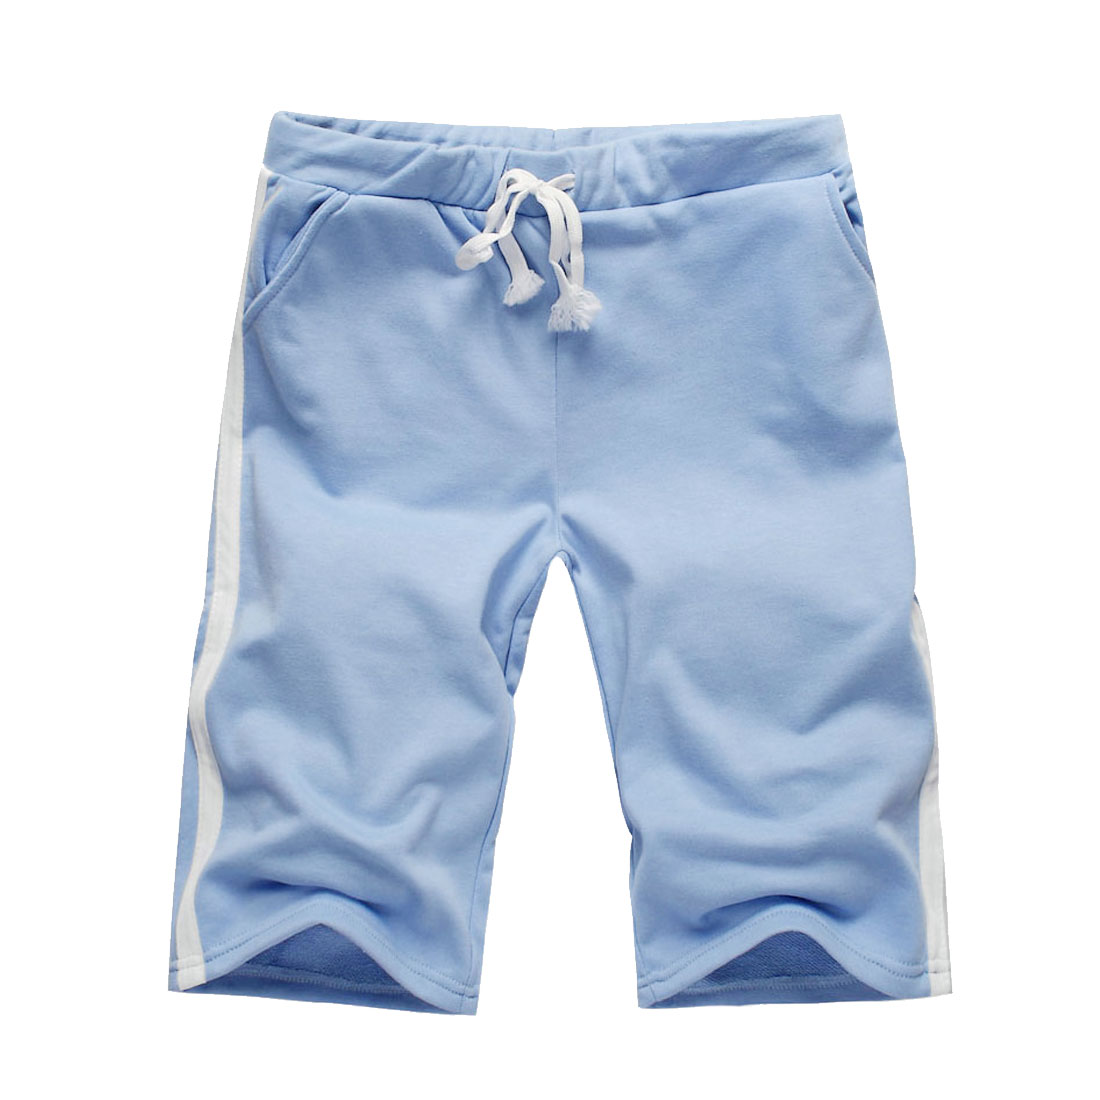 Mens NEW Trendy Light Blue Front Slant Pockets Walking Short Trousers Pants Shorts W31